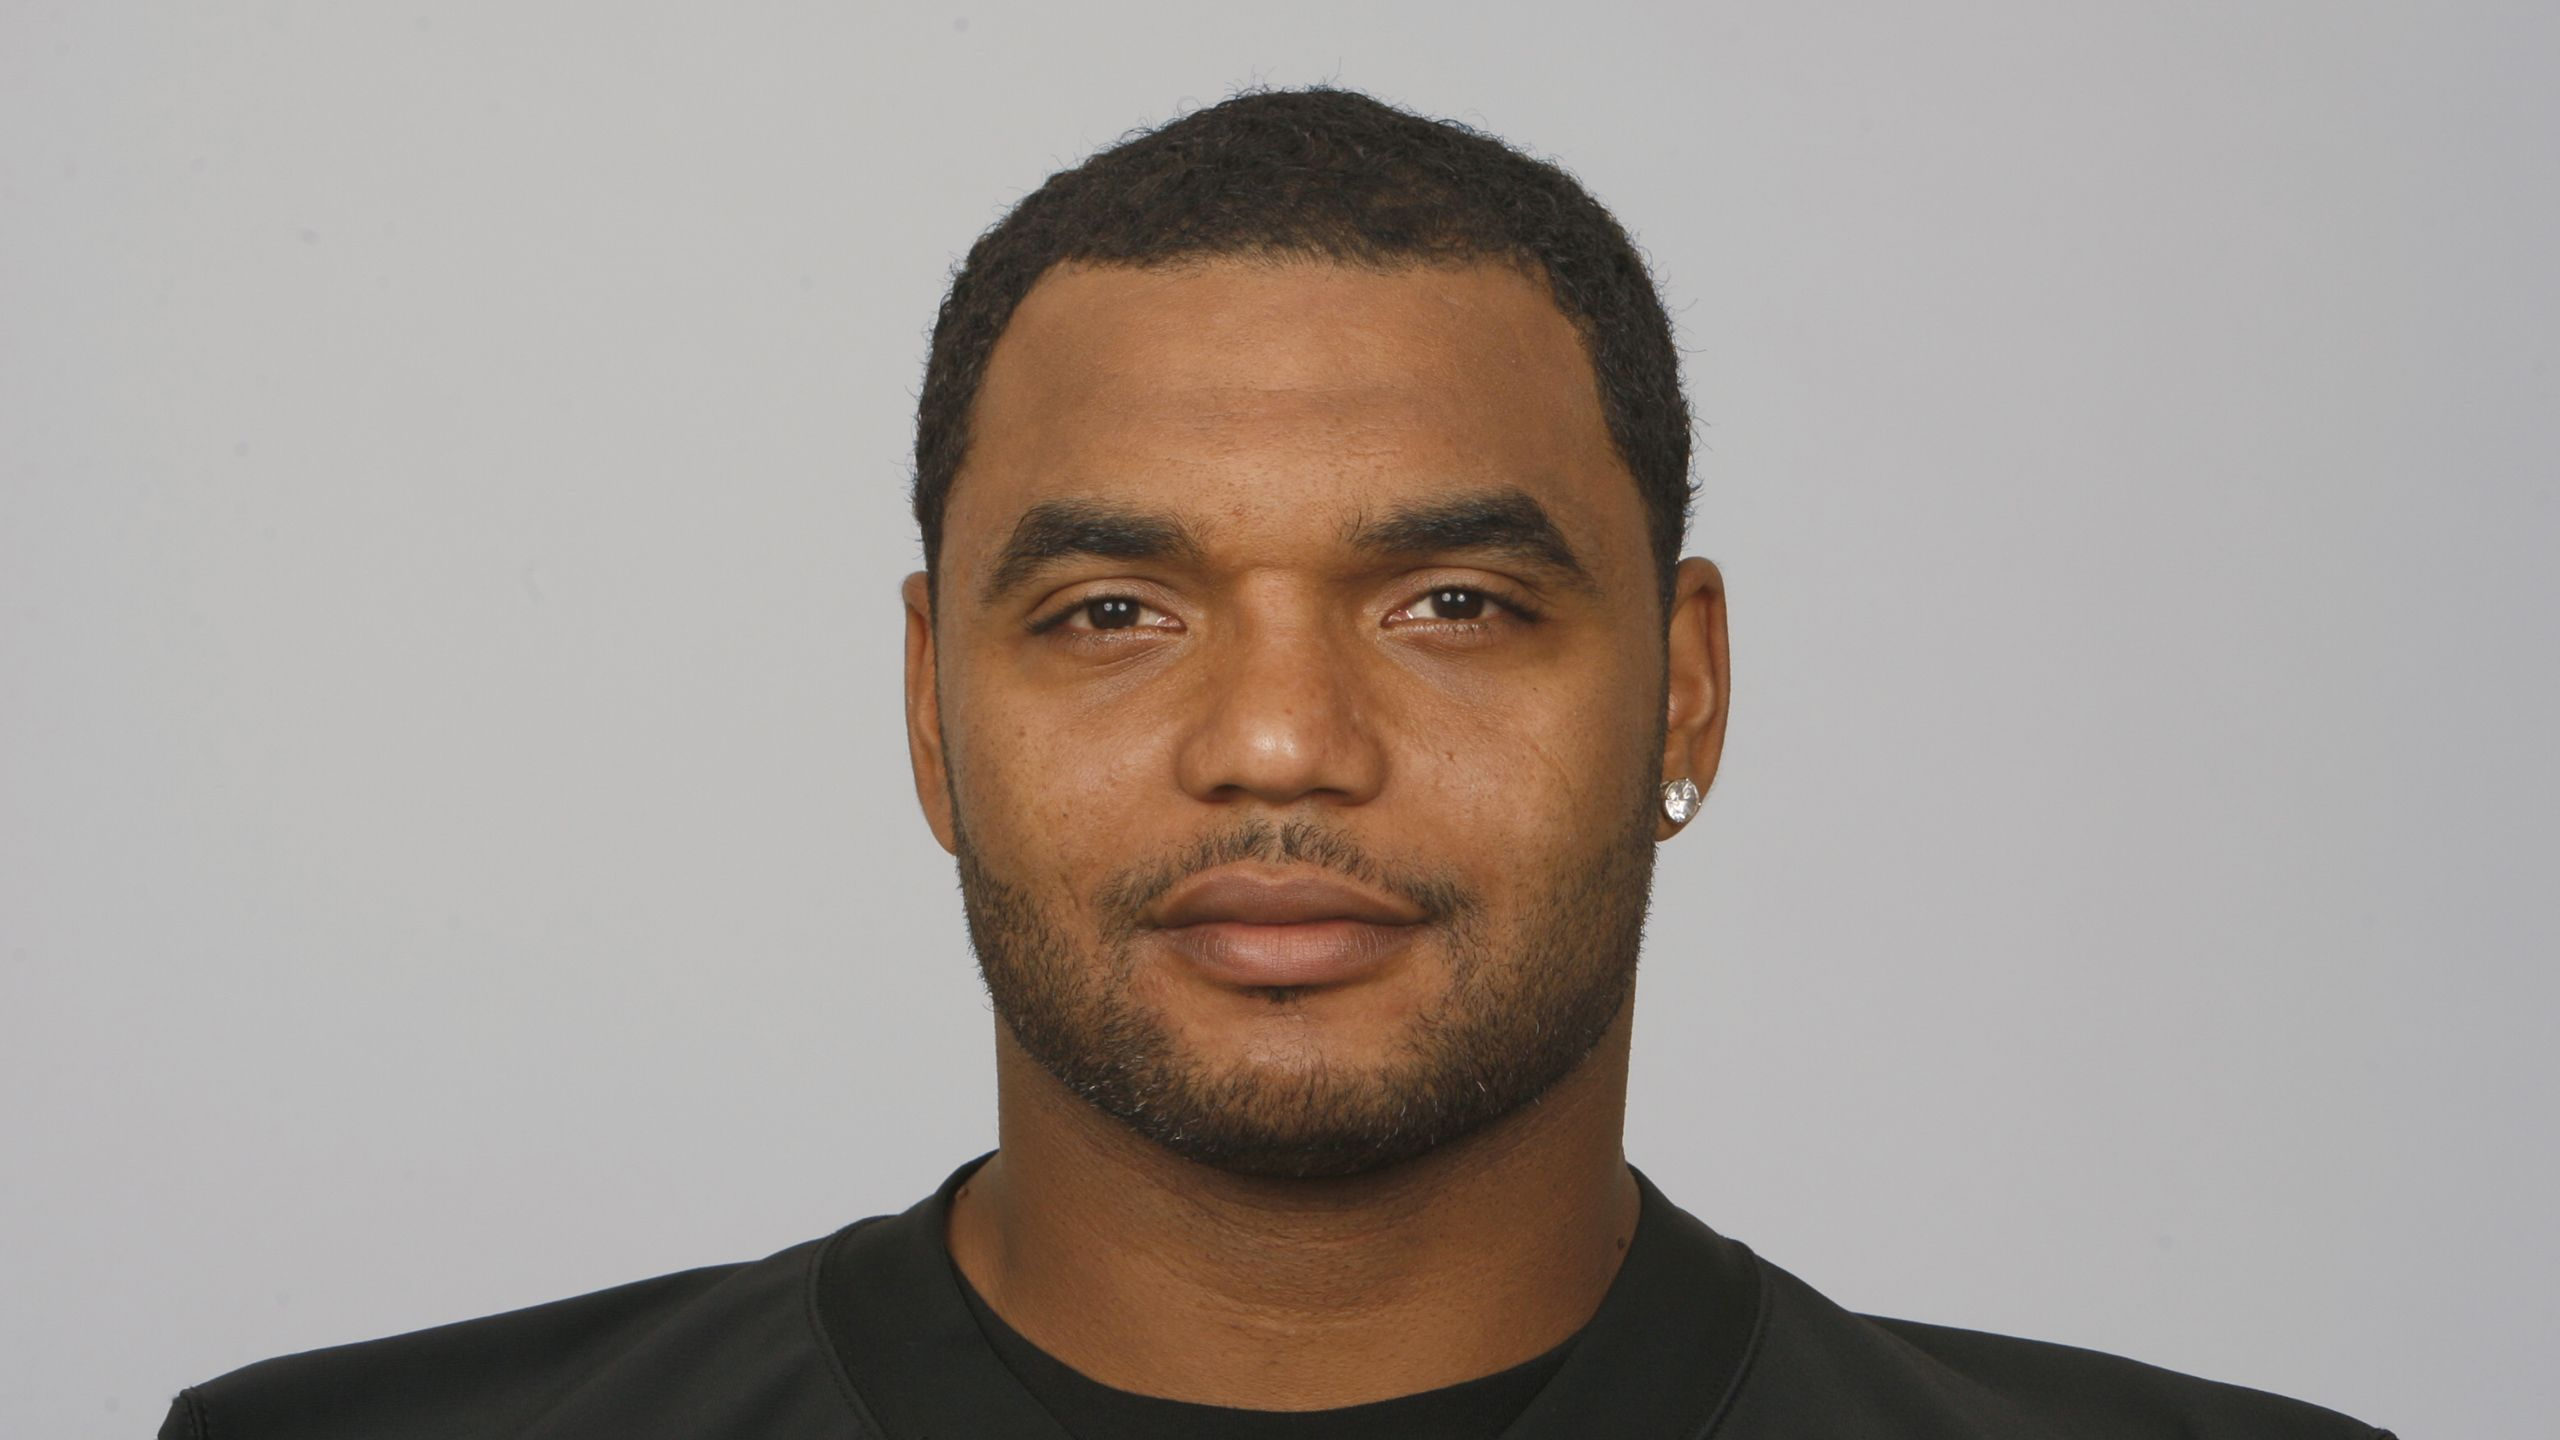 Richard Seymour